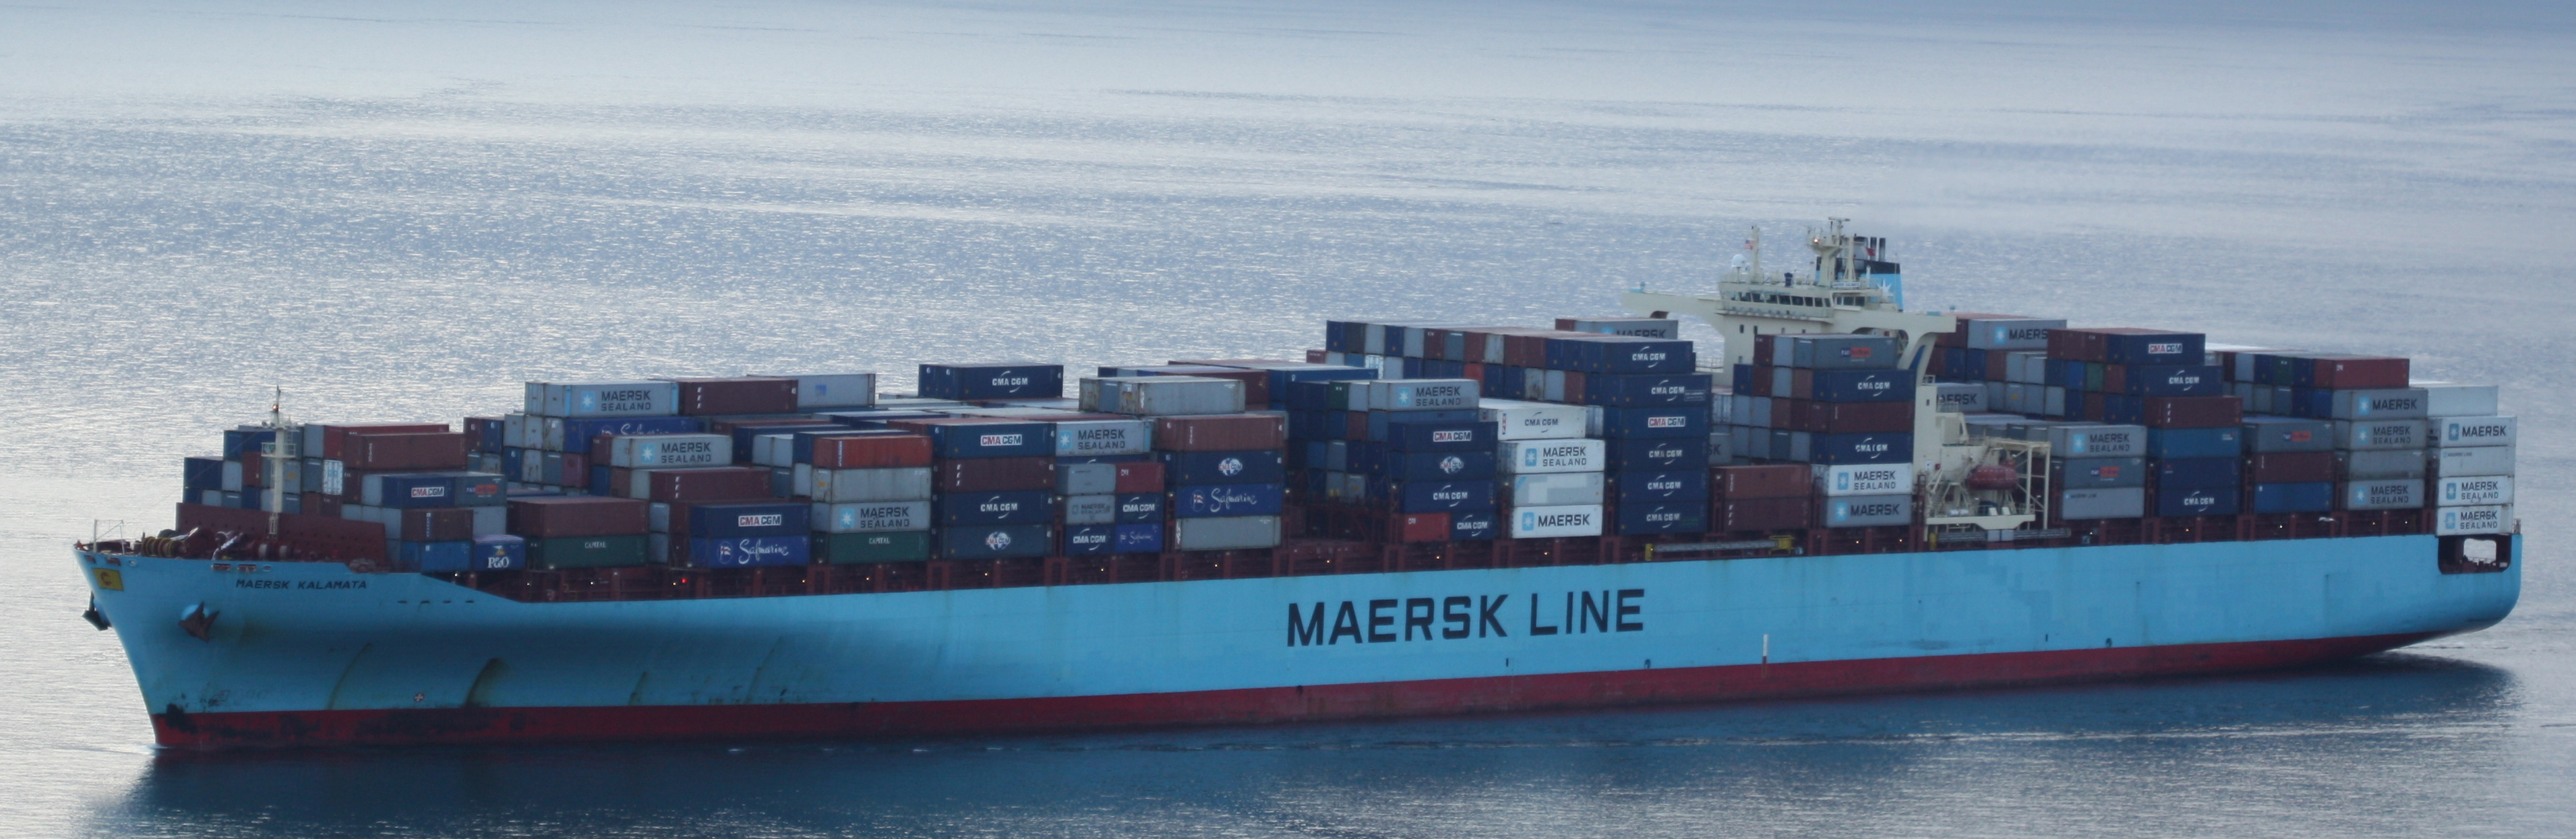 Shipping Company Maersk Planning To D Print Spare Parts On Ships - Maersk invoice tracking